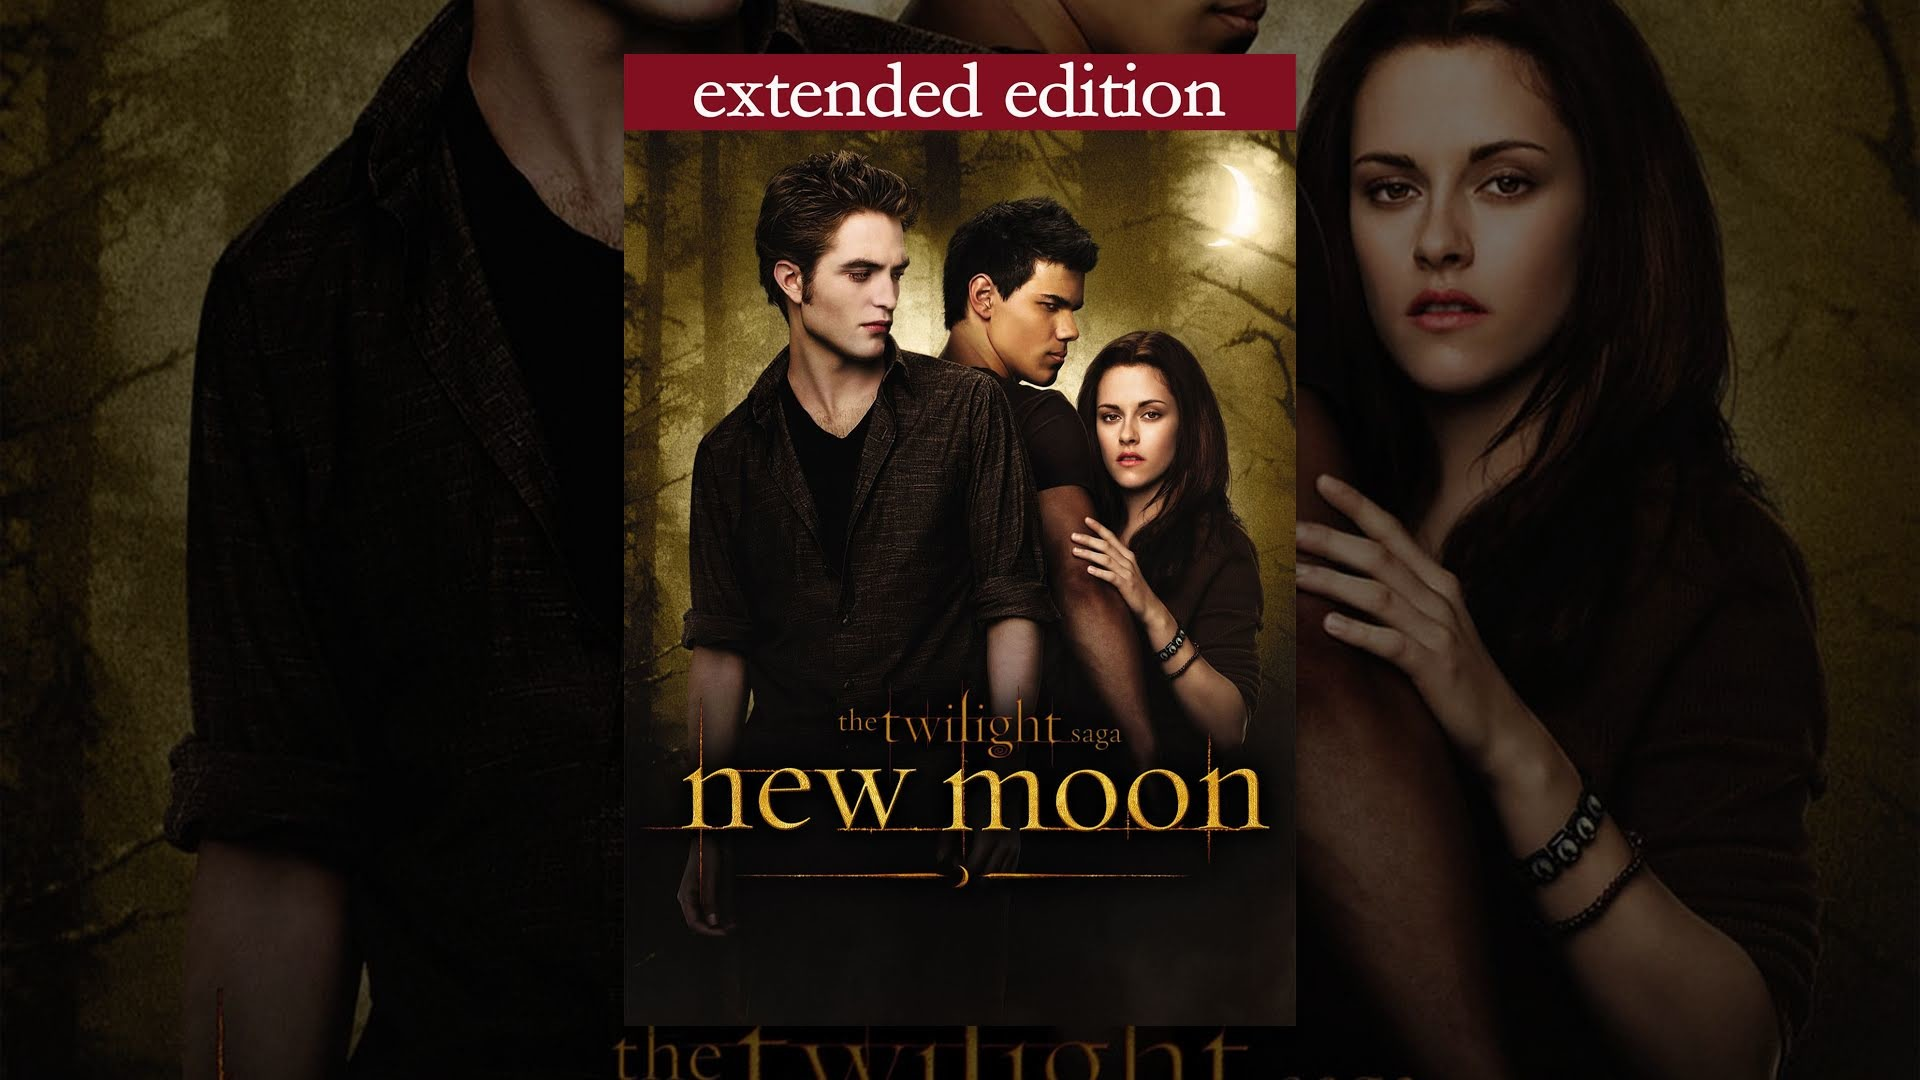 1920x1080 The Twilight Saga: New Moon (Extended Version)